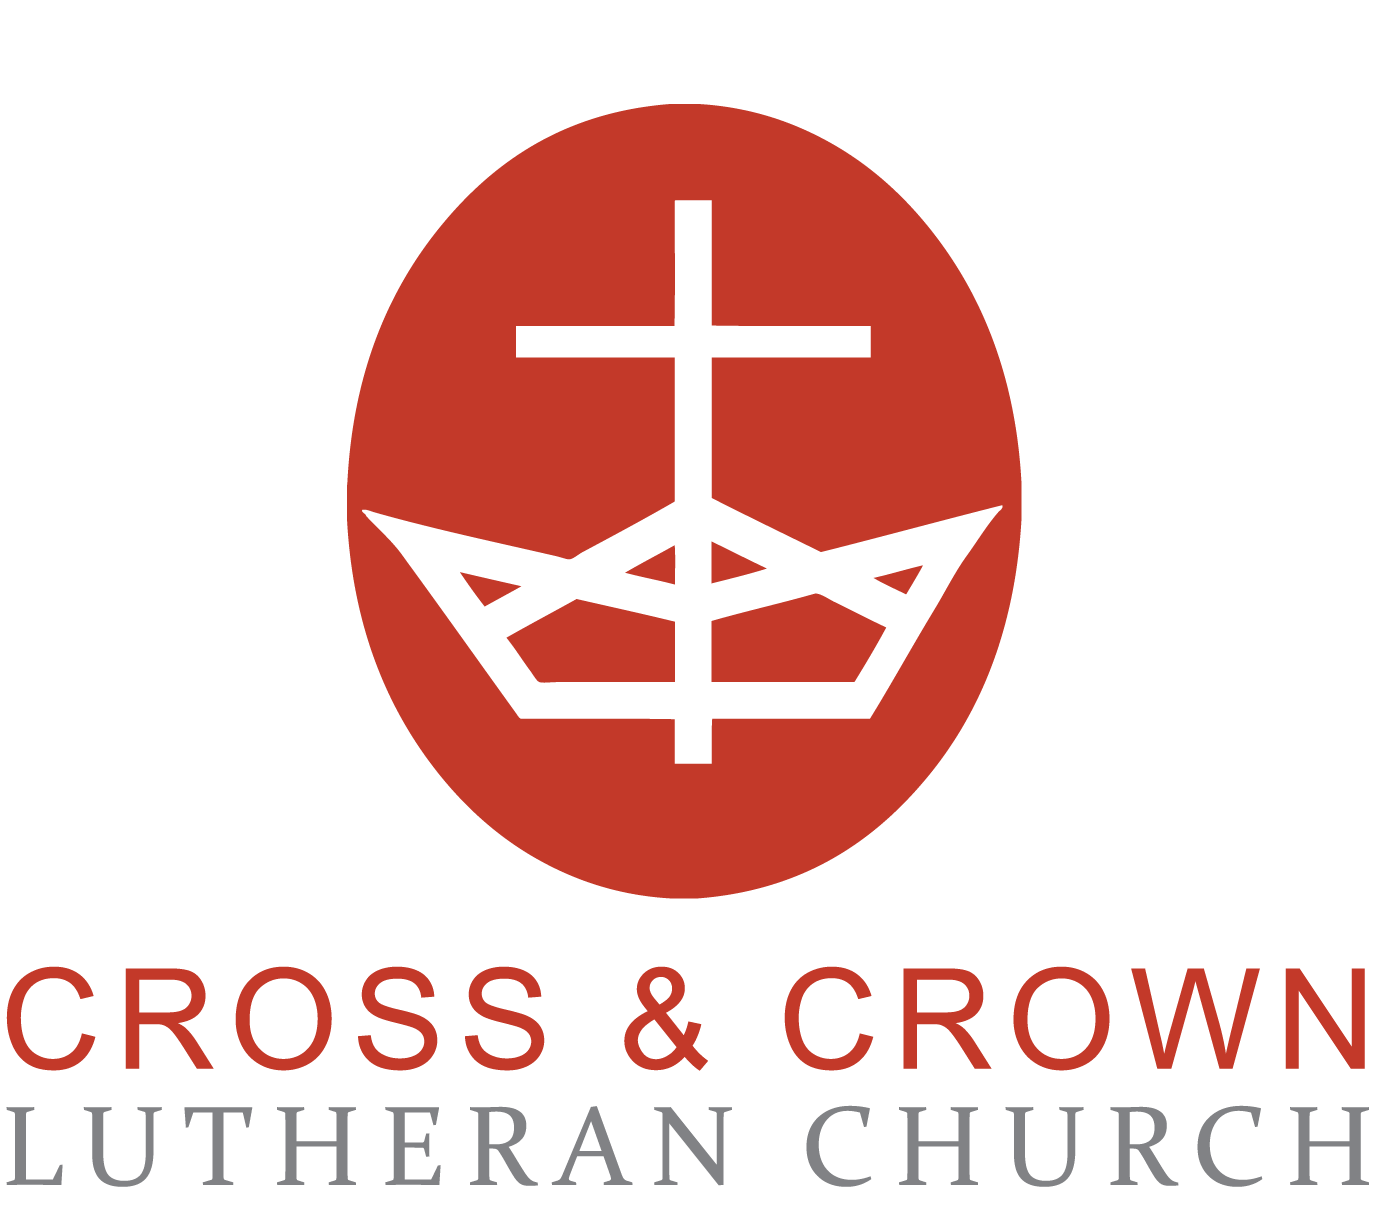 Cross and crown bible belles pinterest crown church banners cross and crown buycottarizona Image collections